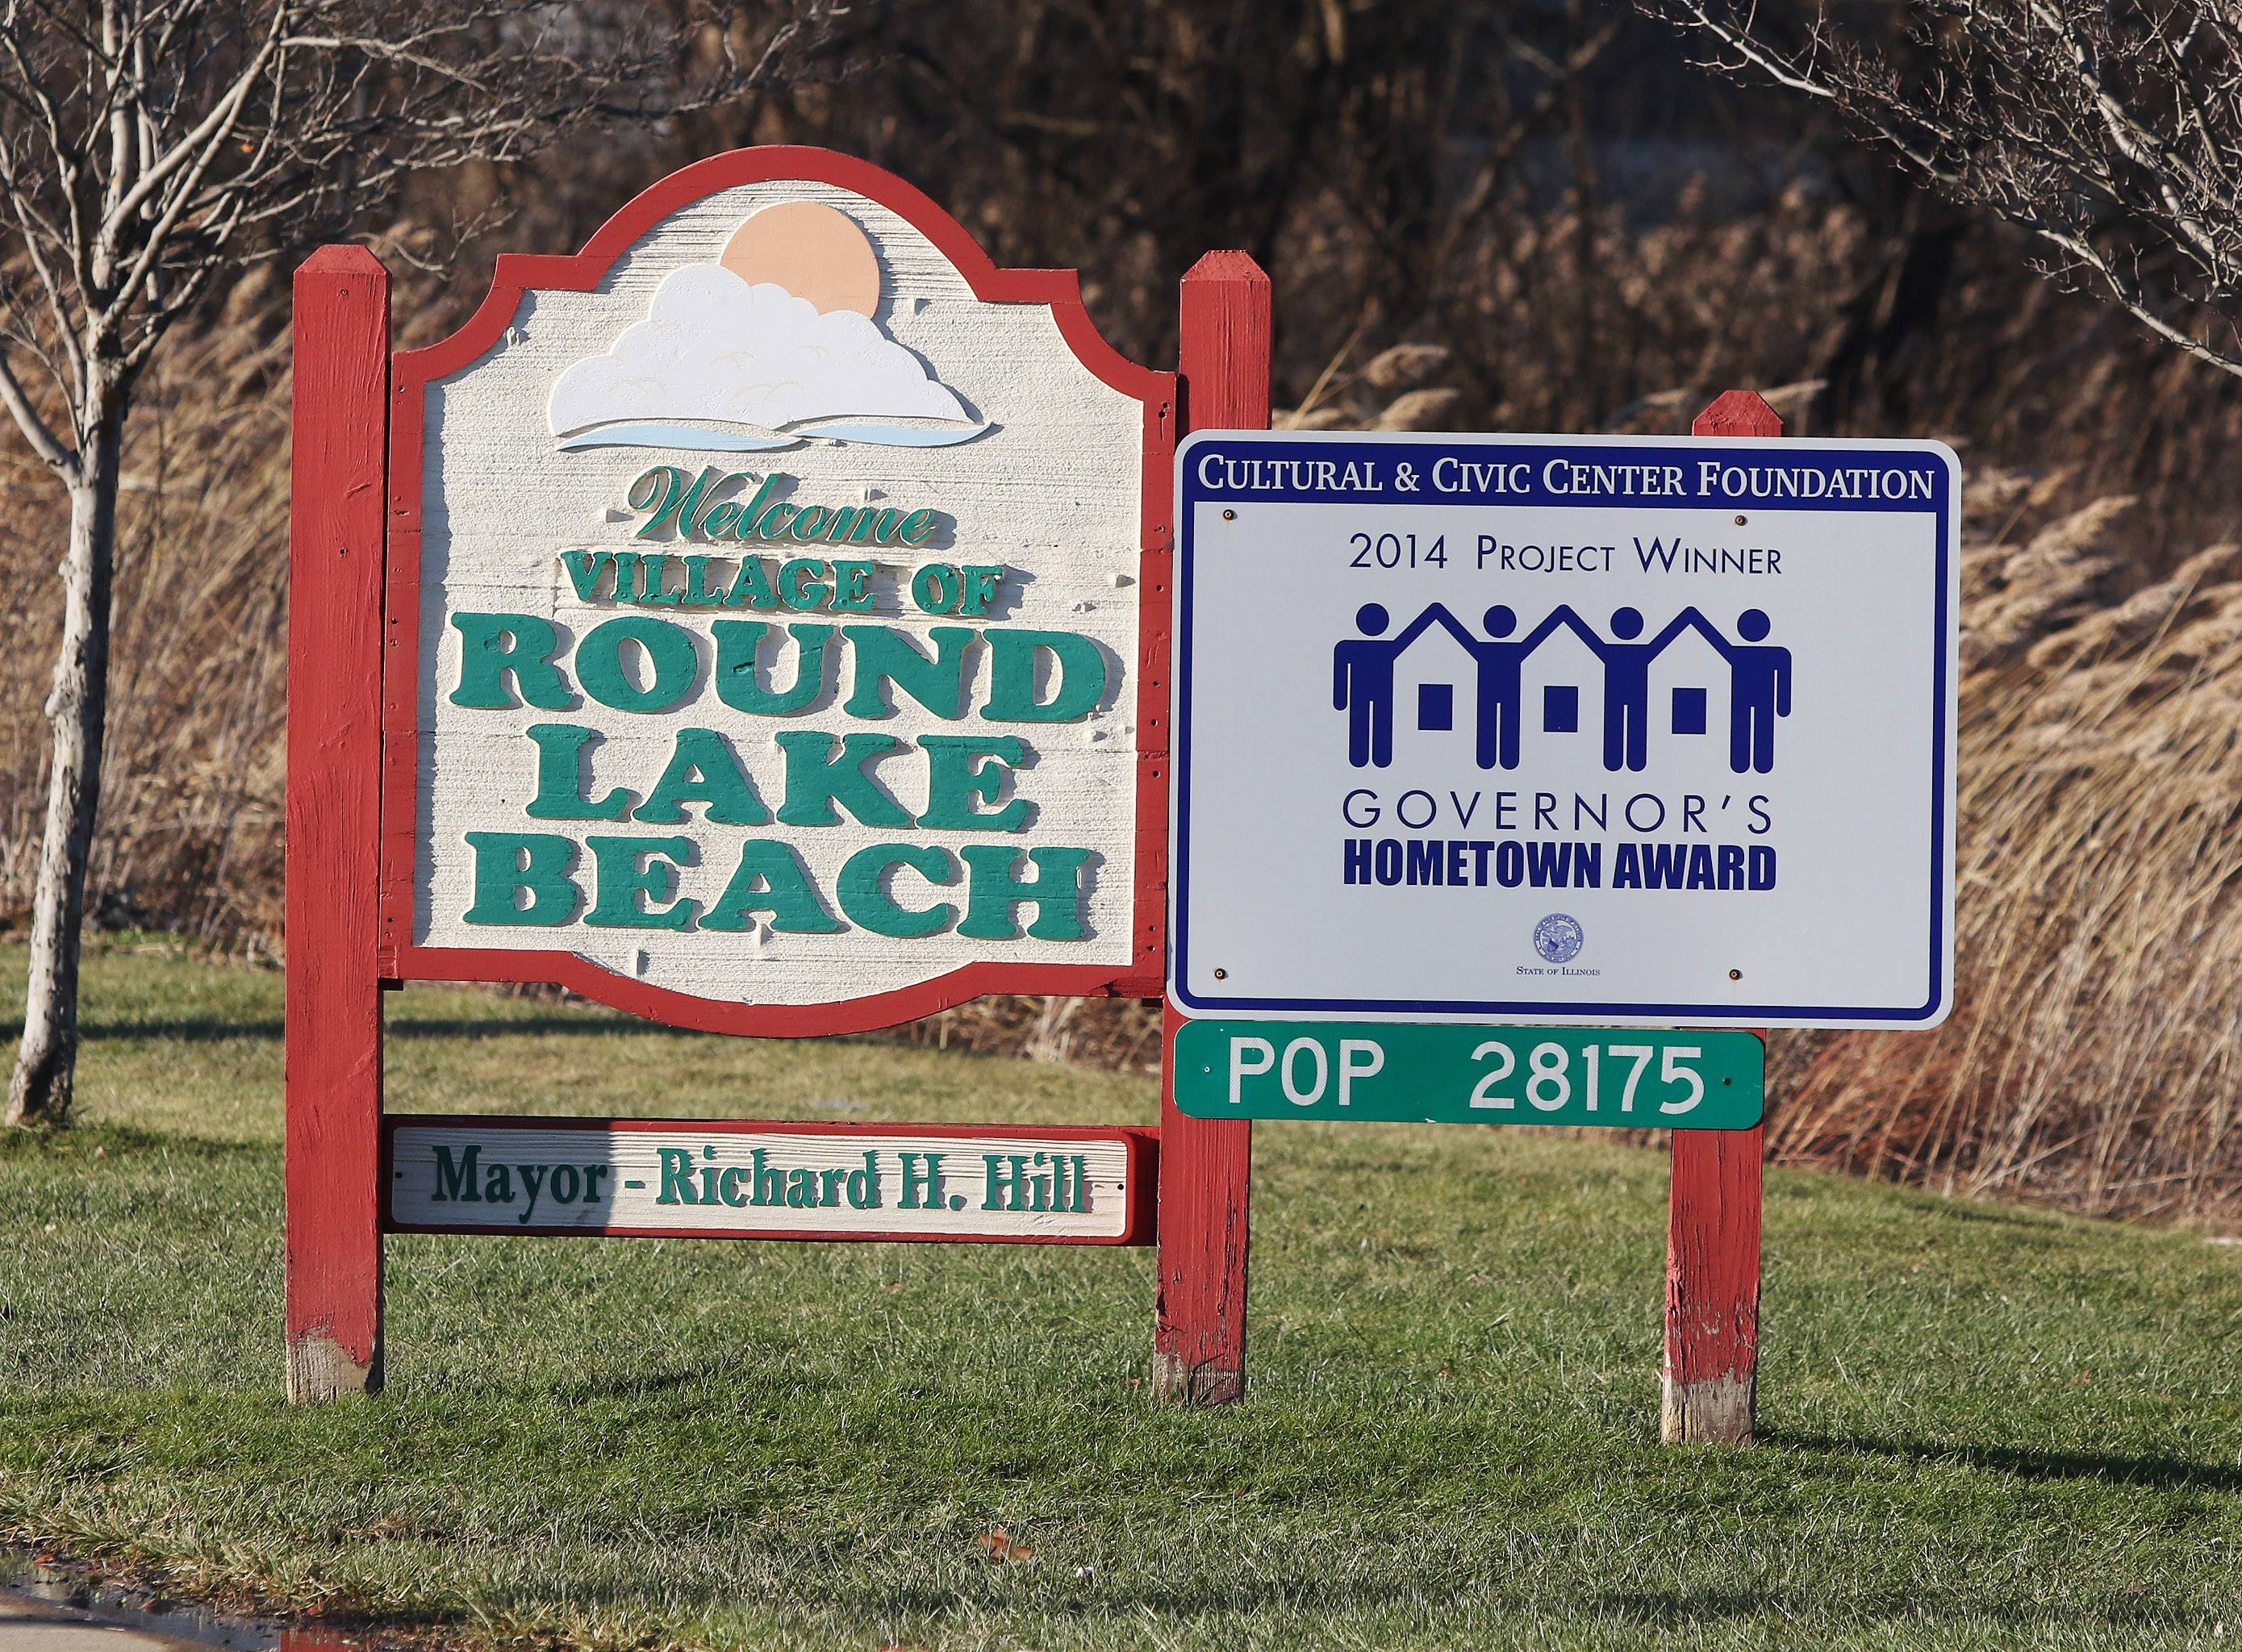 A sign along Route 83 welcomes visitors as they enter Round Lake Beach.